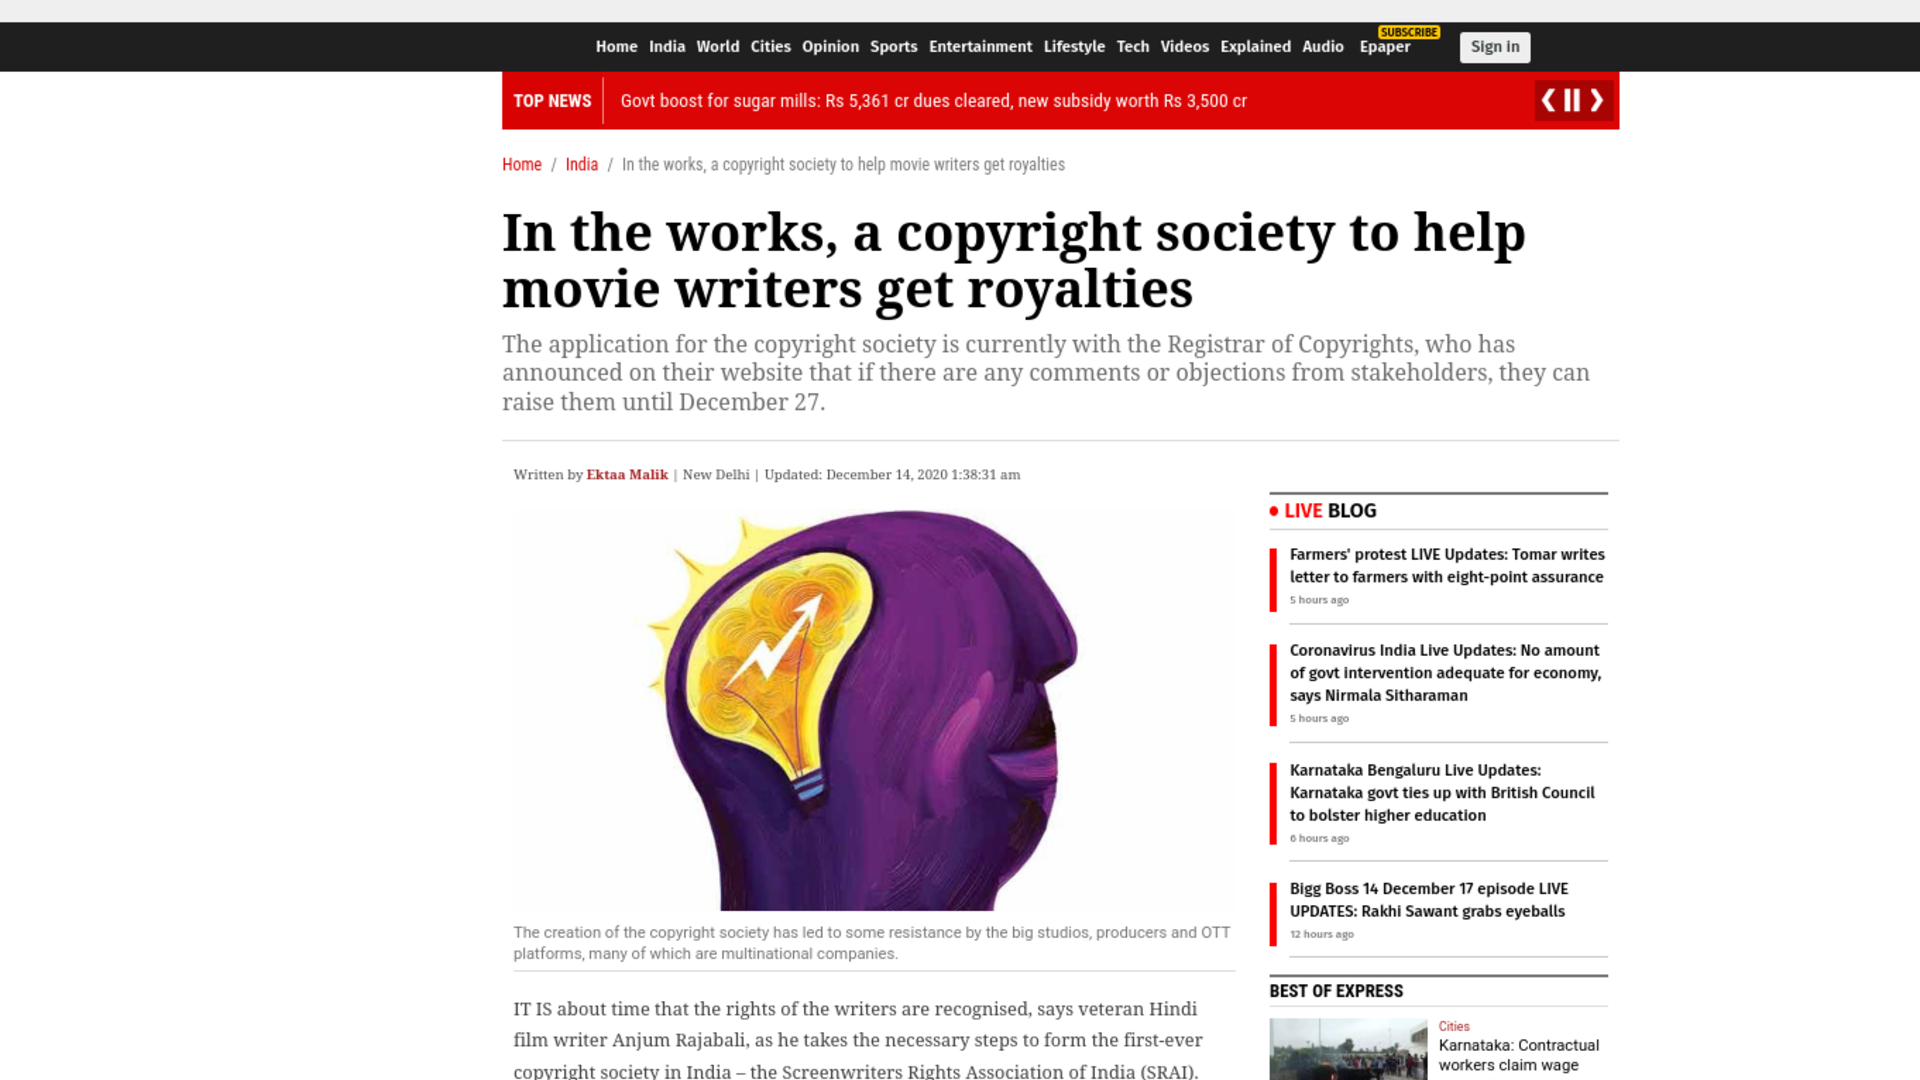 Fairness Rocks News In the works, a copyright society to help movie writers get royalties